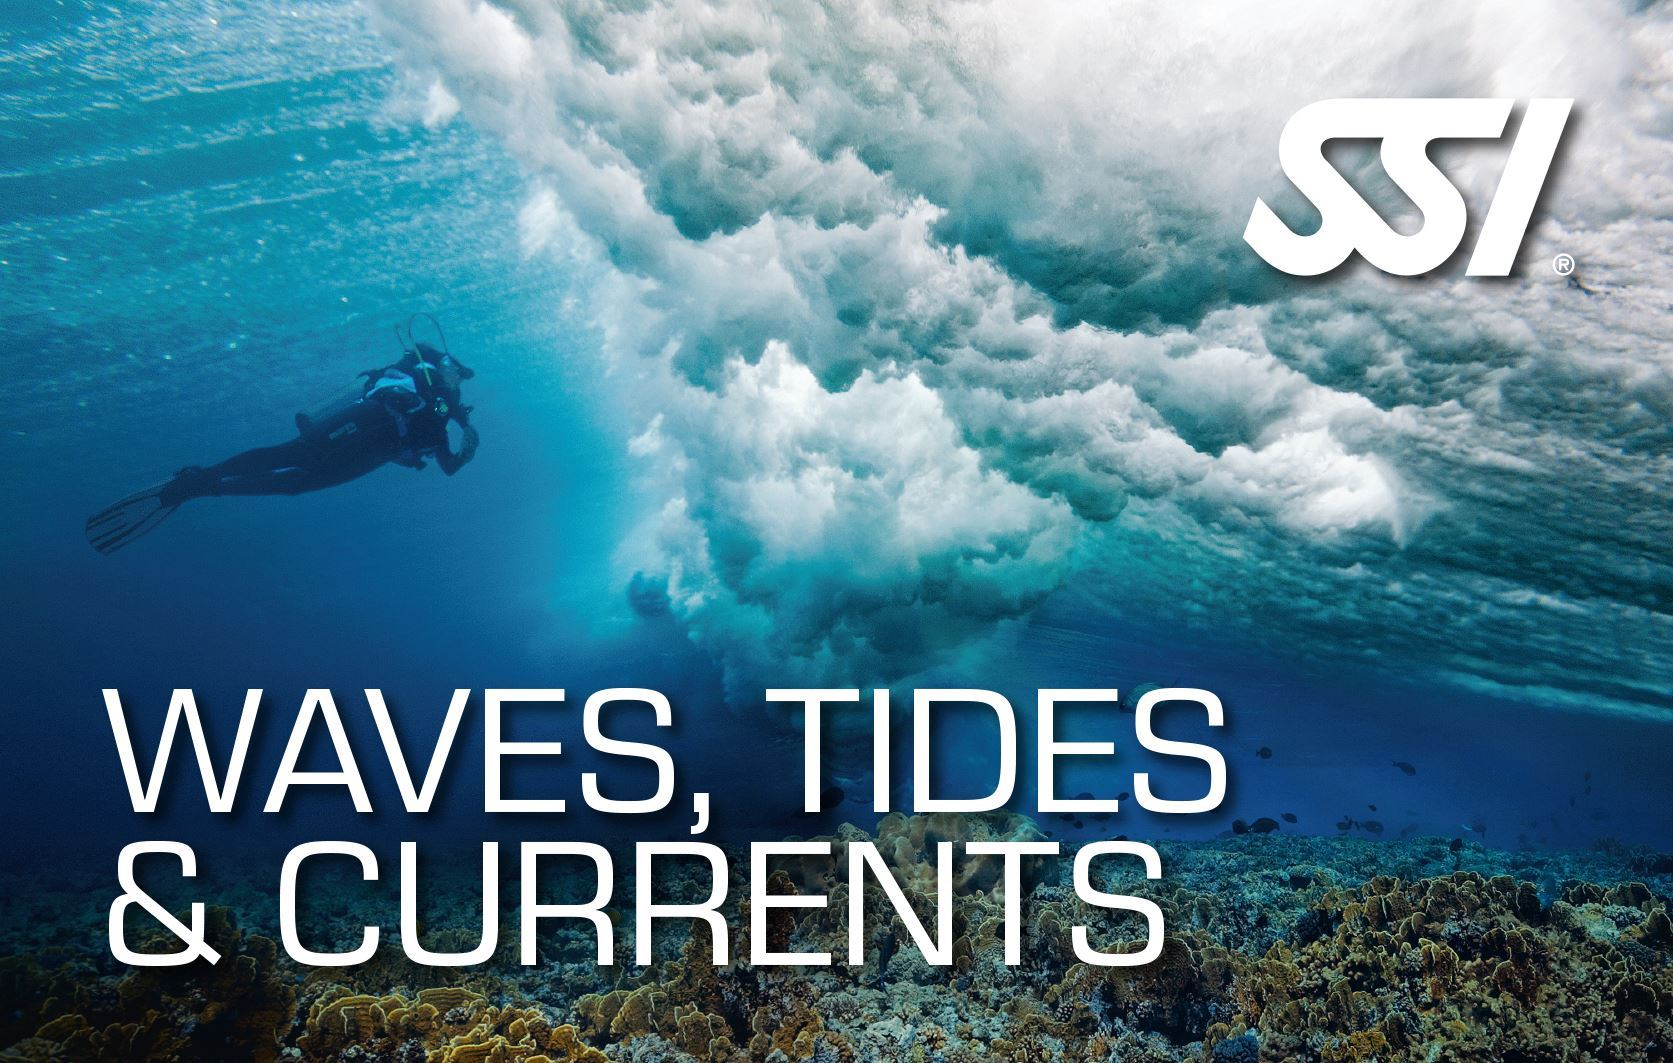 SSI Waves, Tides and Currents Speciality - Strømdykning thumbnail